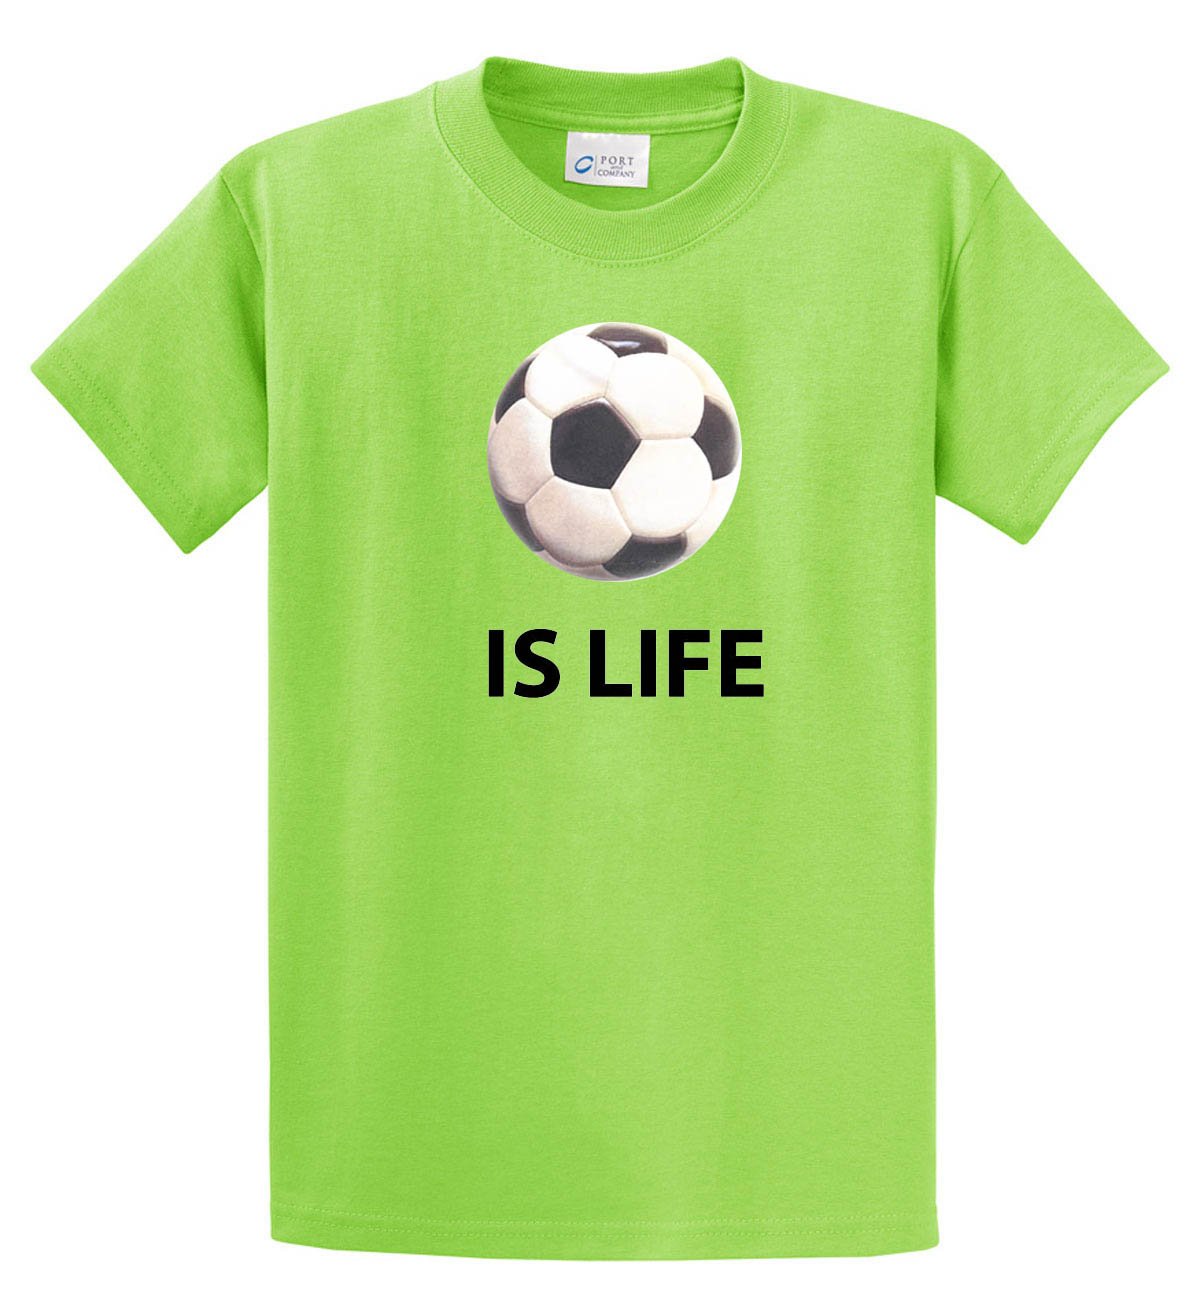 Ball is Life (Soccer Edition) Tshirt in lime by Code Four Athletics